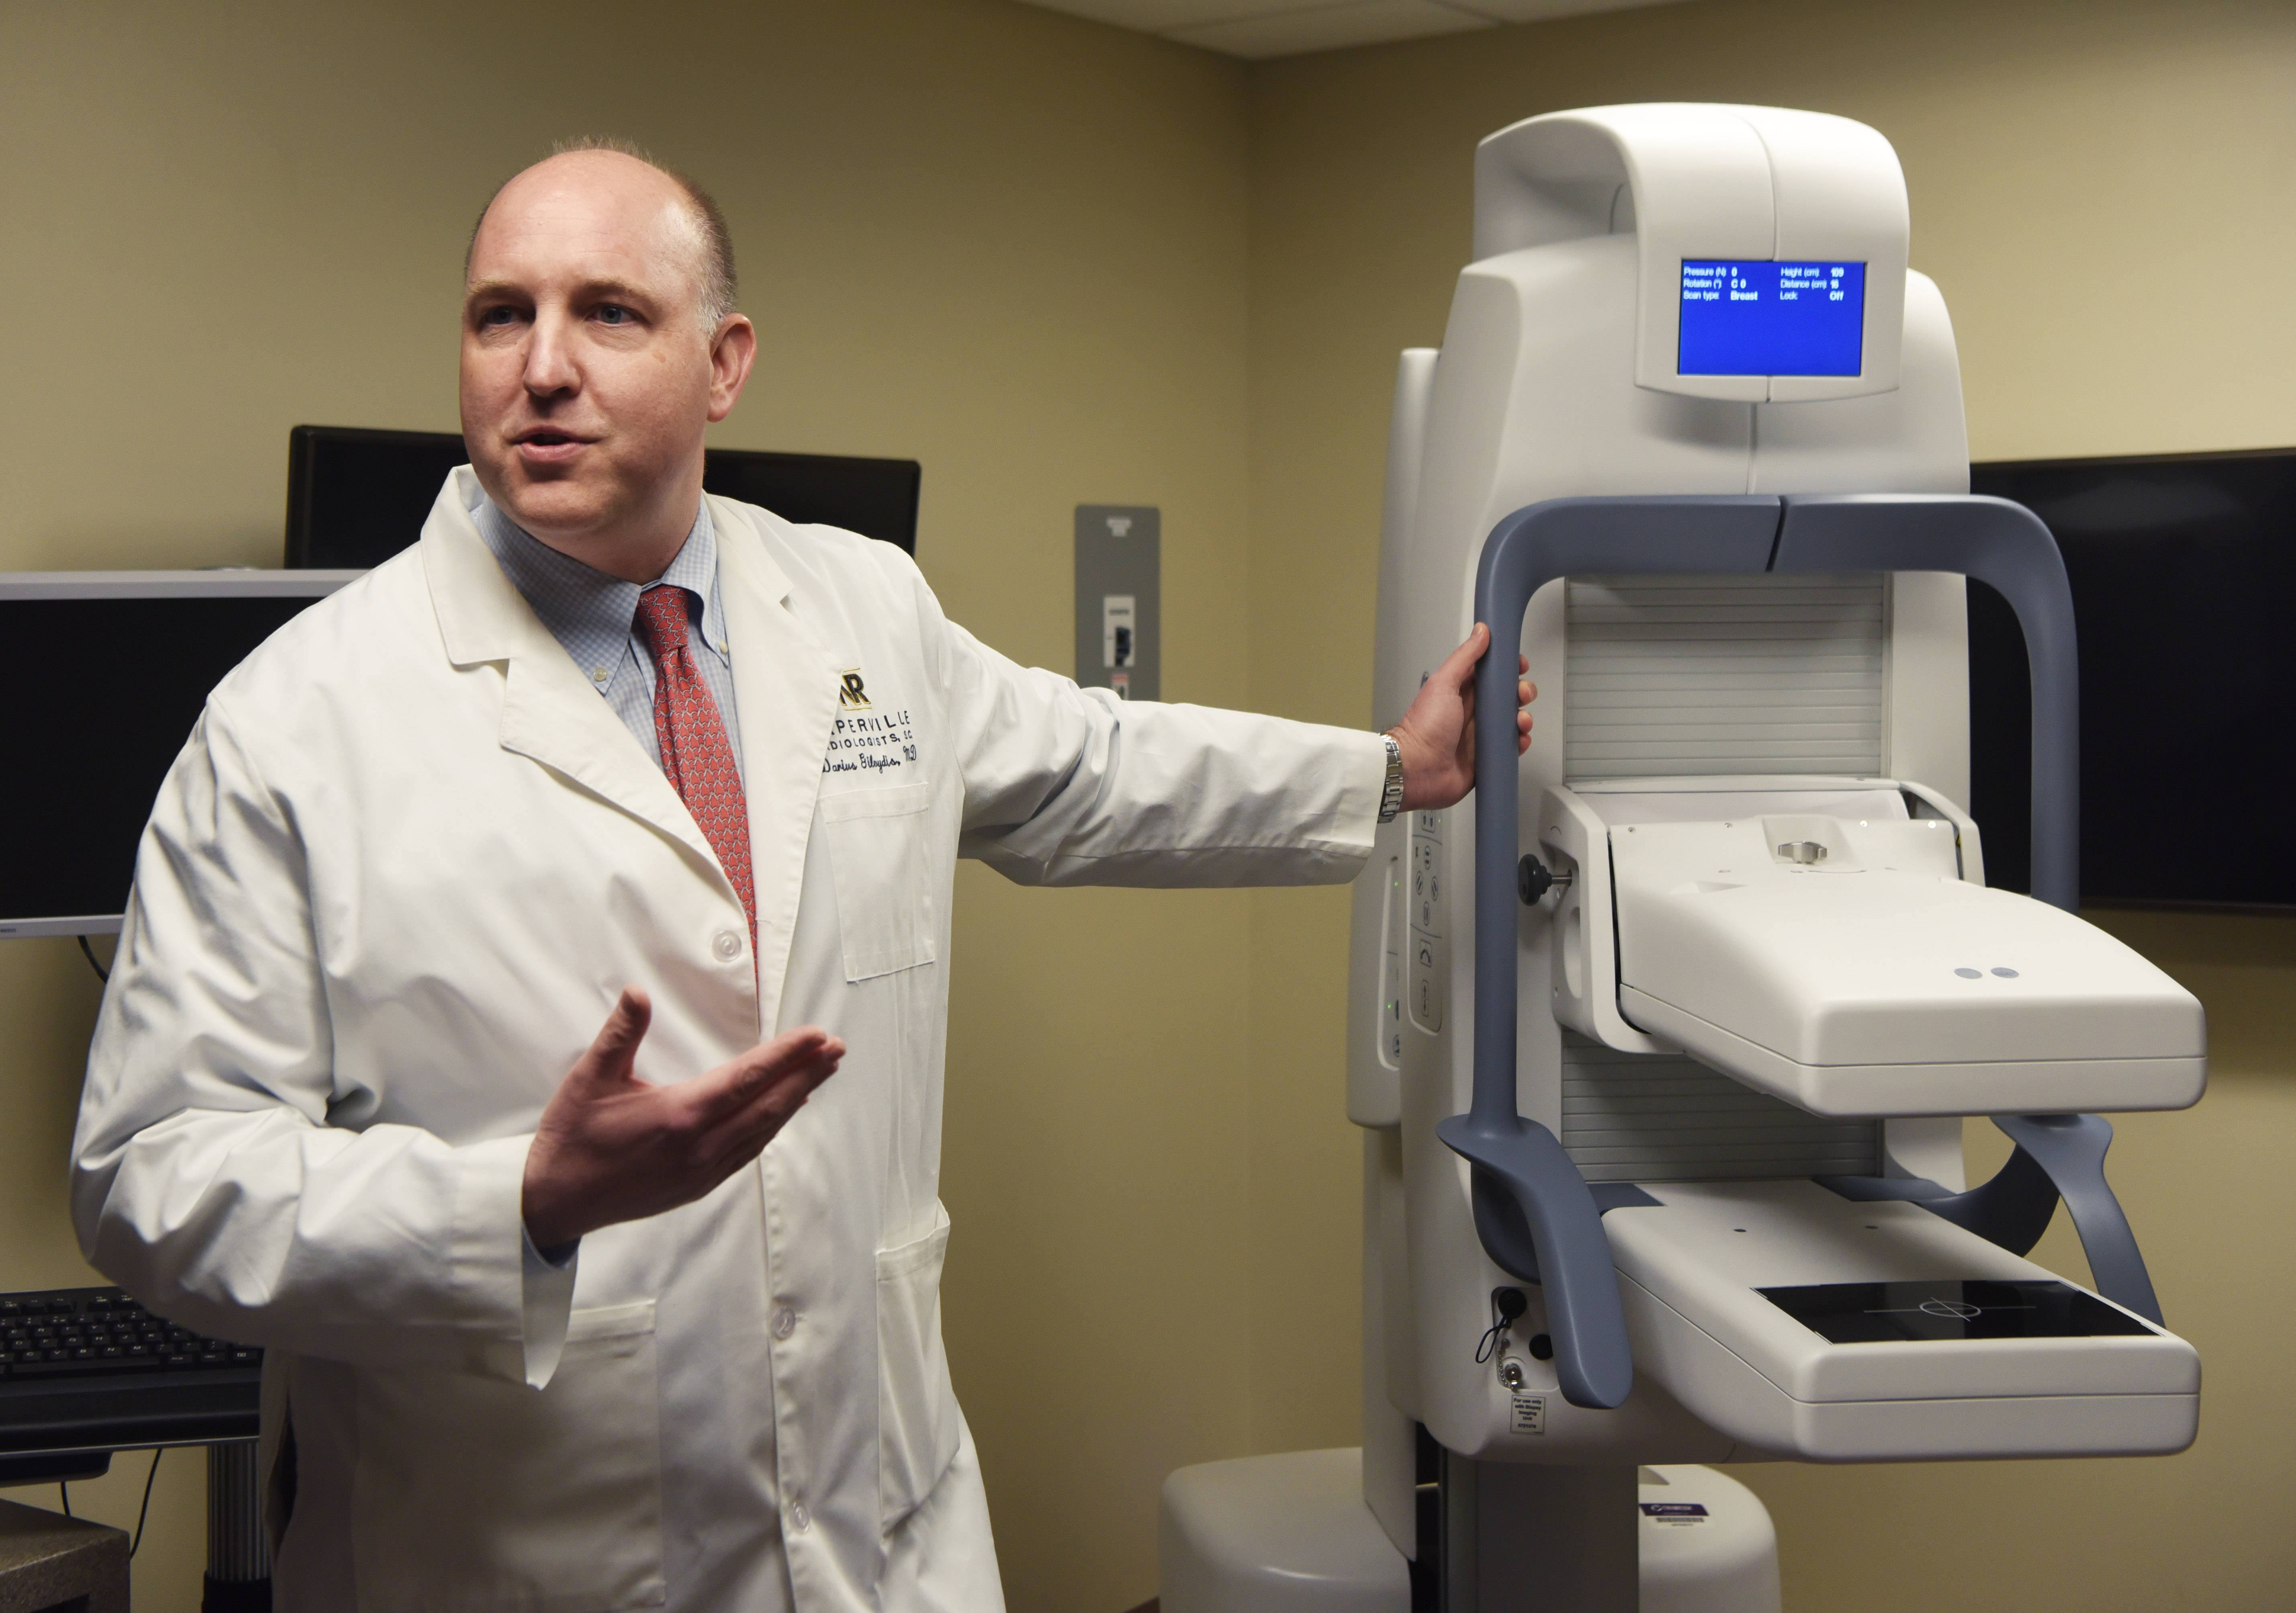 Dr. Darius Gilvydis, a diagnostic radiologist and medical director of breast imaging at Edward Hospital in Naperville, says the hospital's new molecular breast imaging machine helps identify cancerous cells in patients with dense breast tissue.